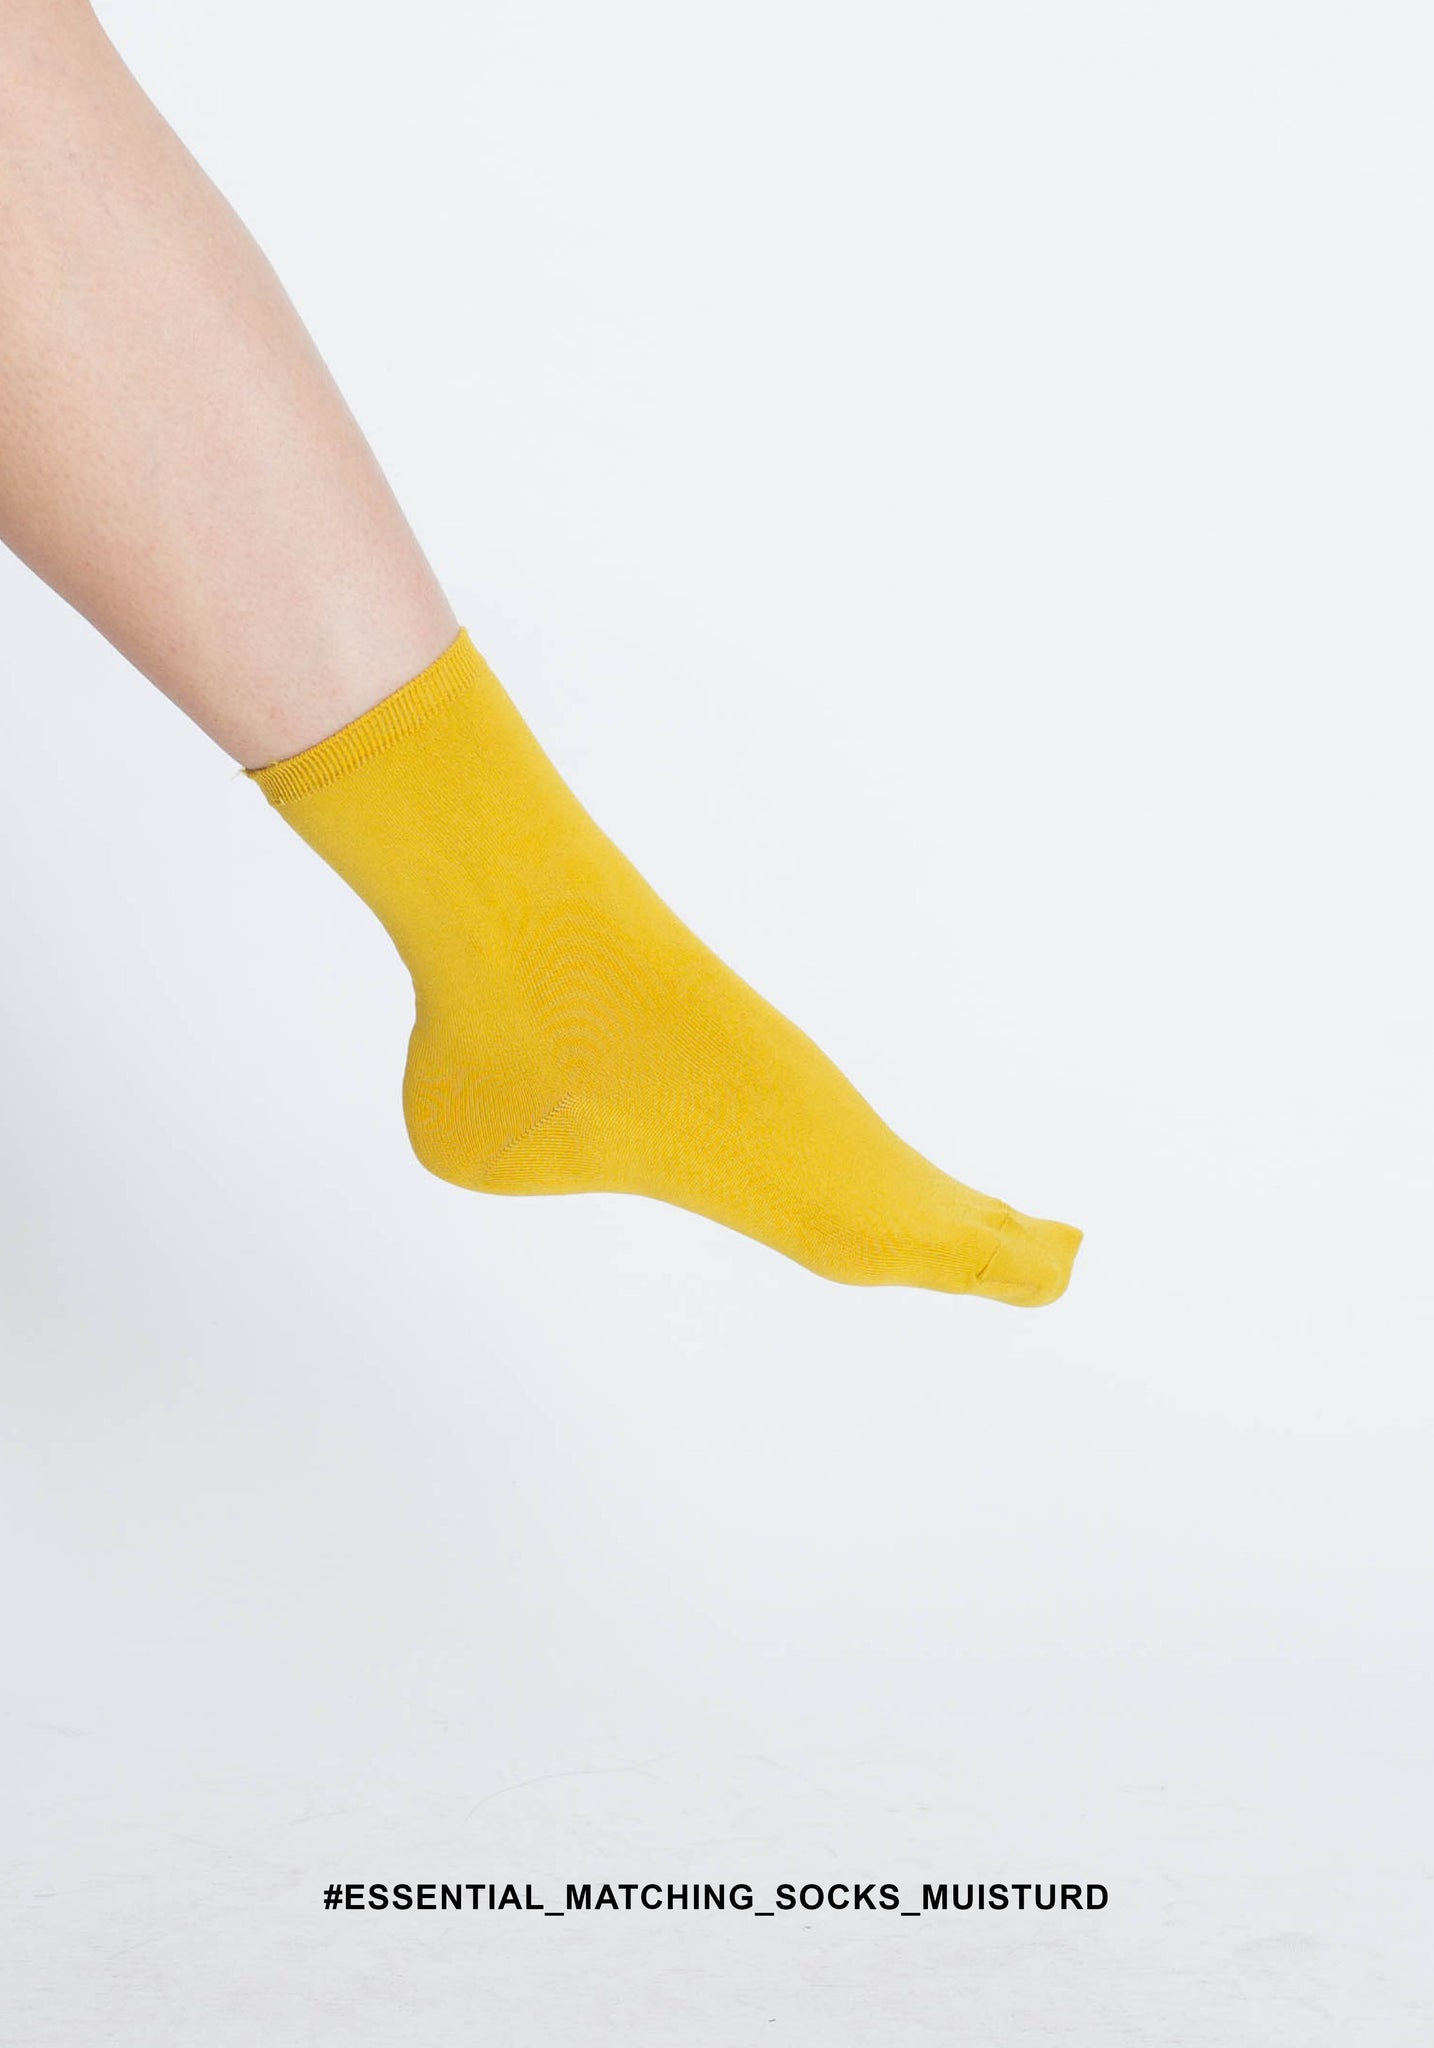 Essential Matching Socks Mustard - whoami